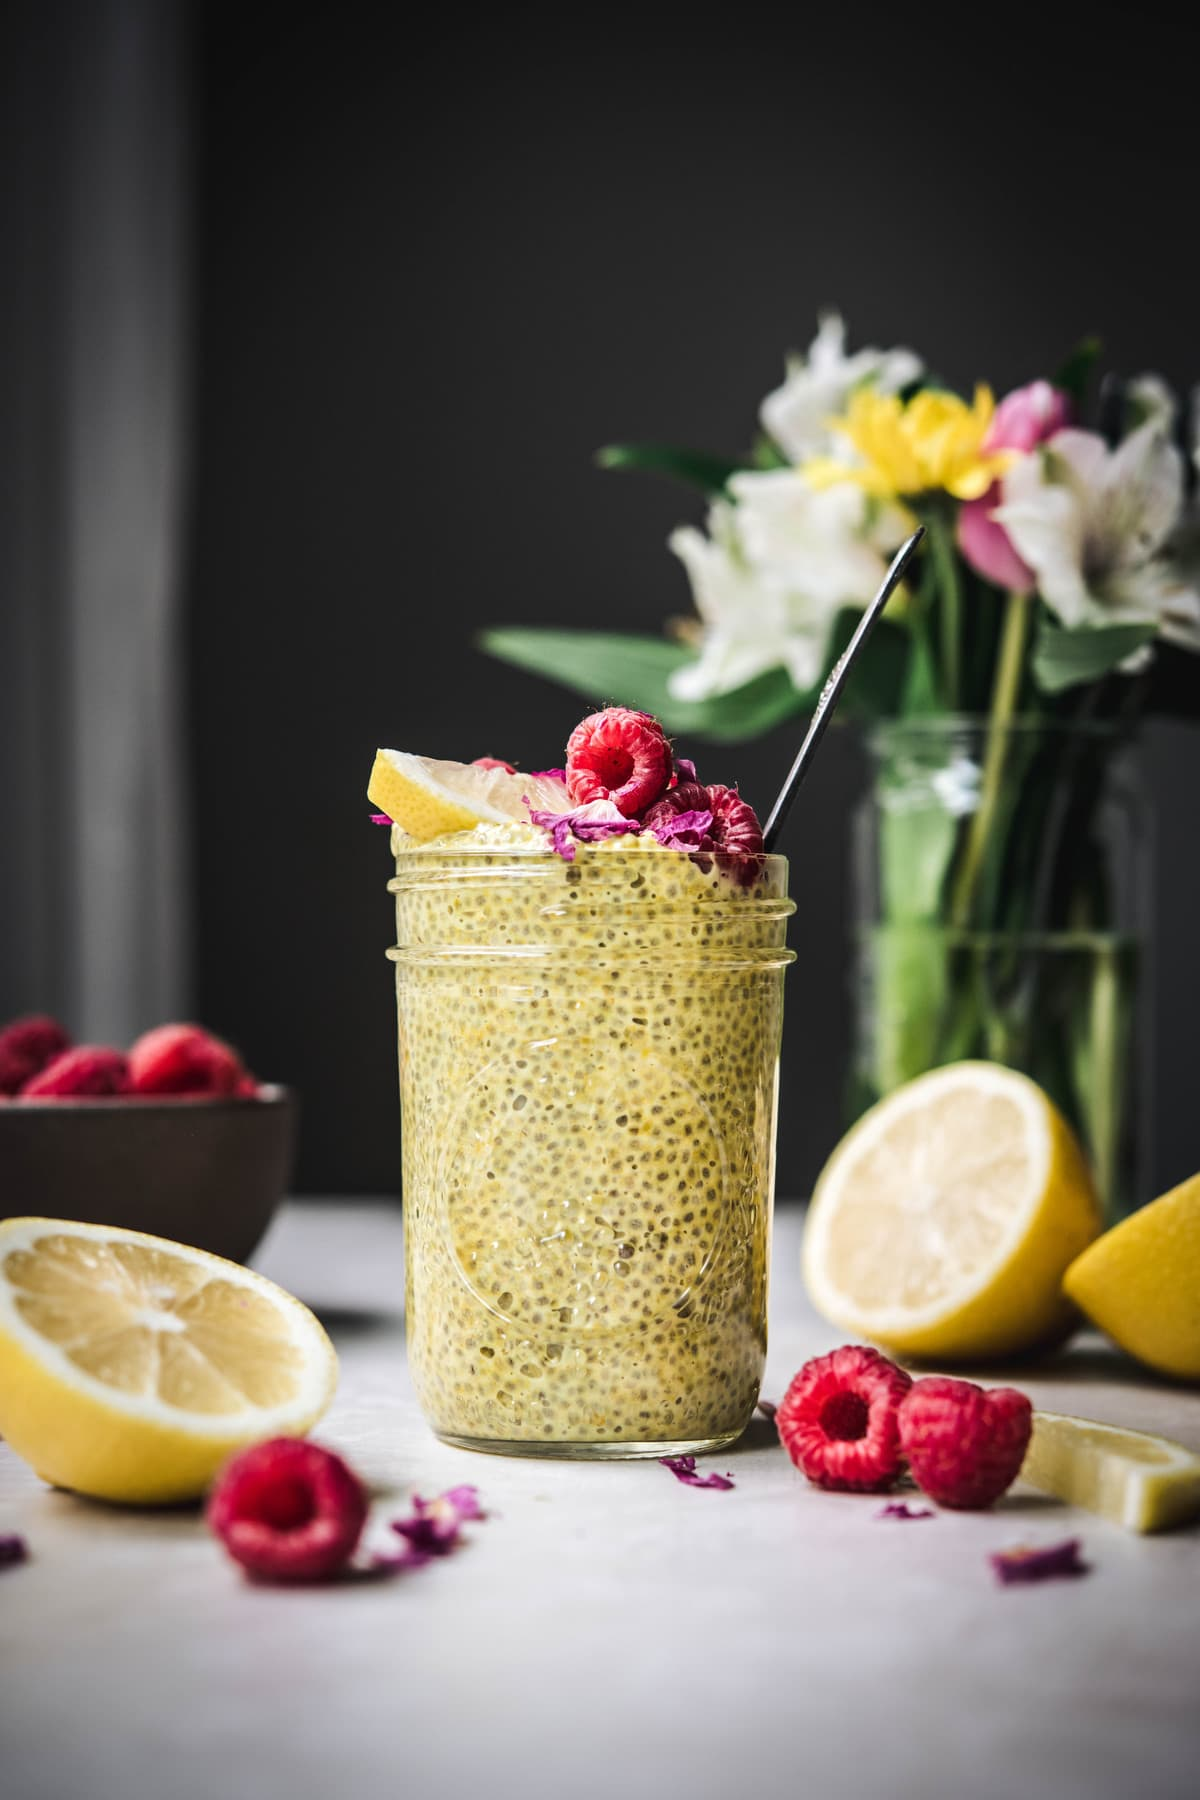 side view of lemon chia pudding in jar